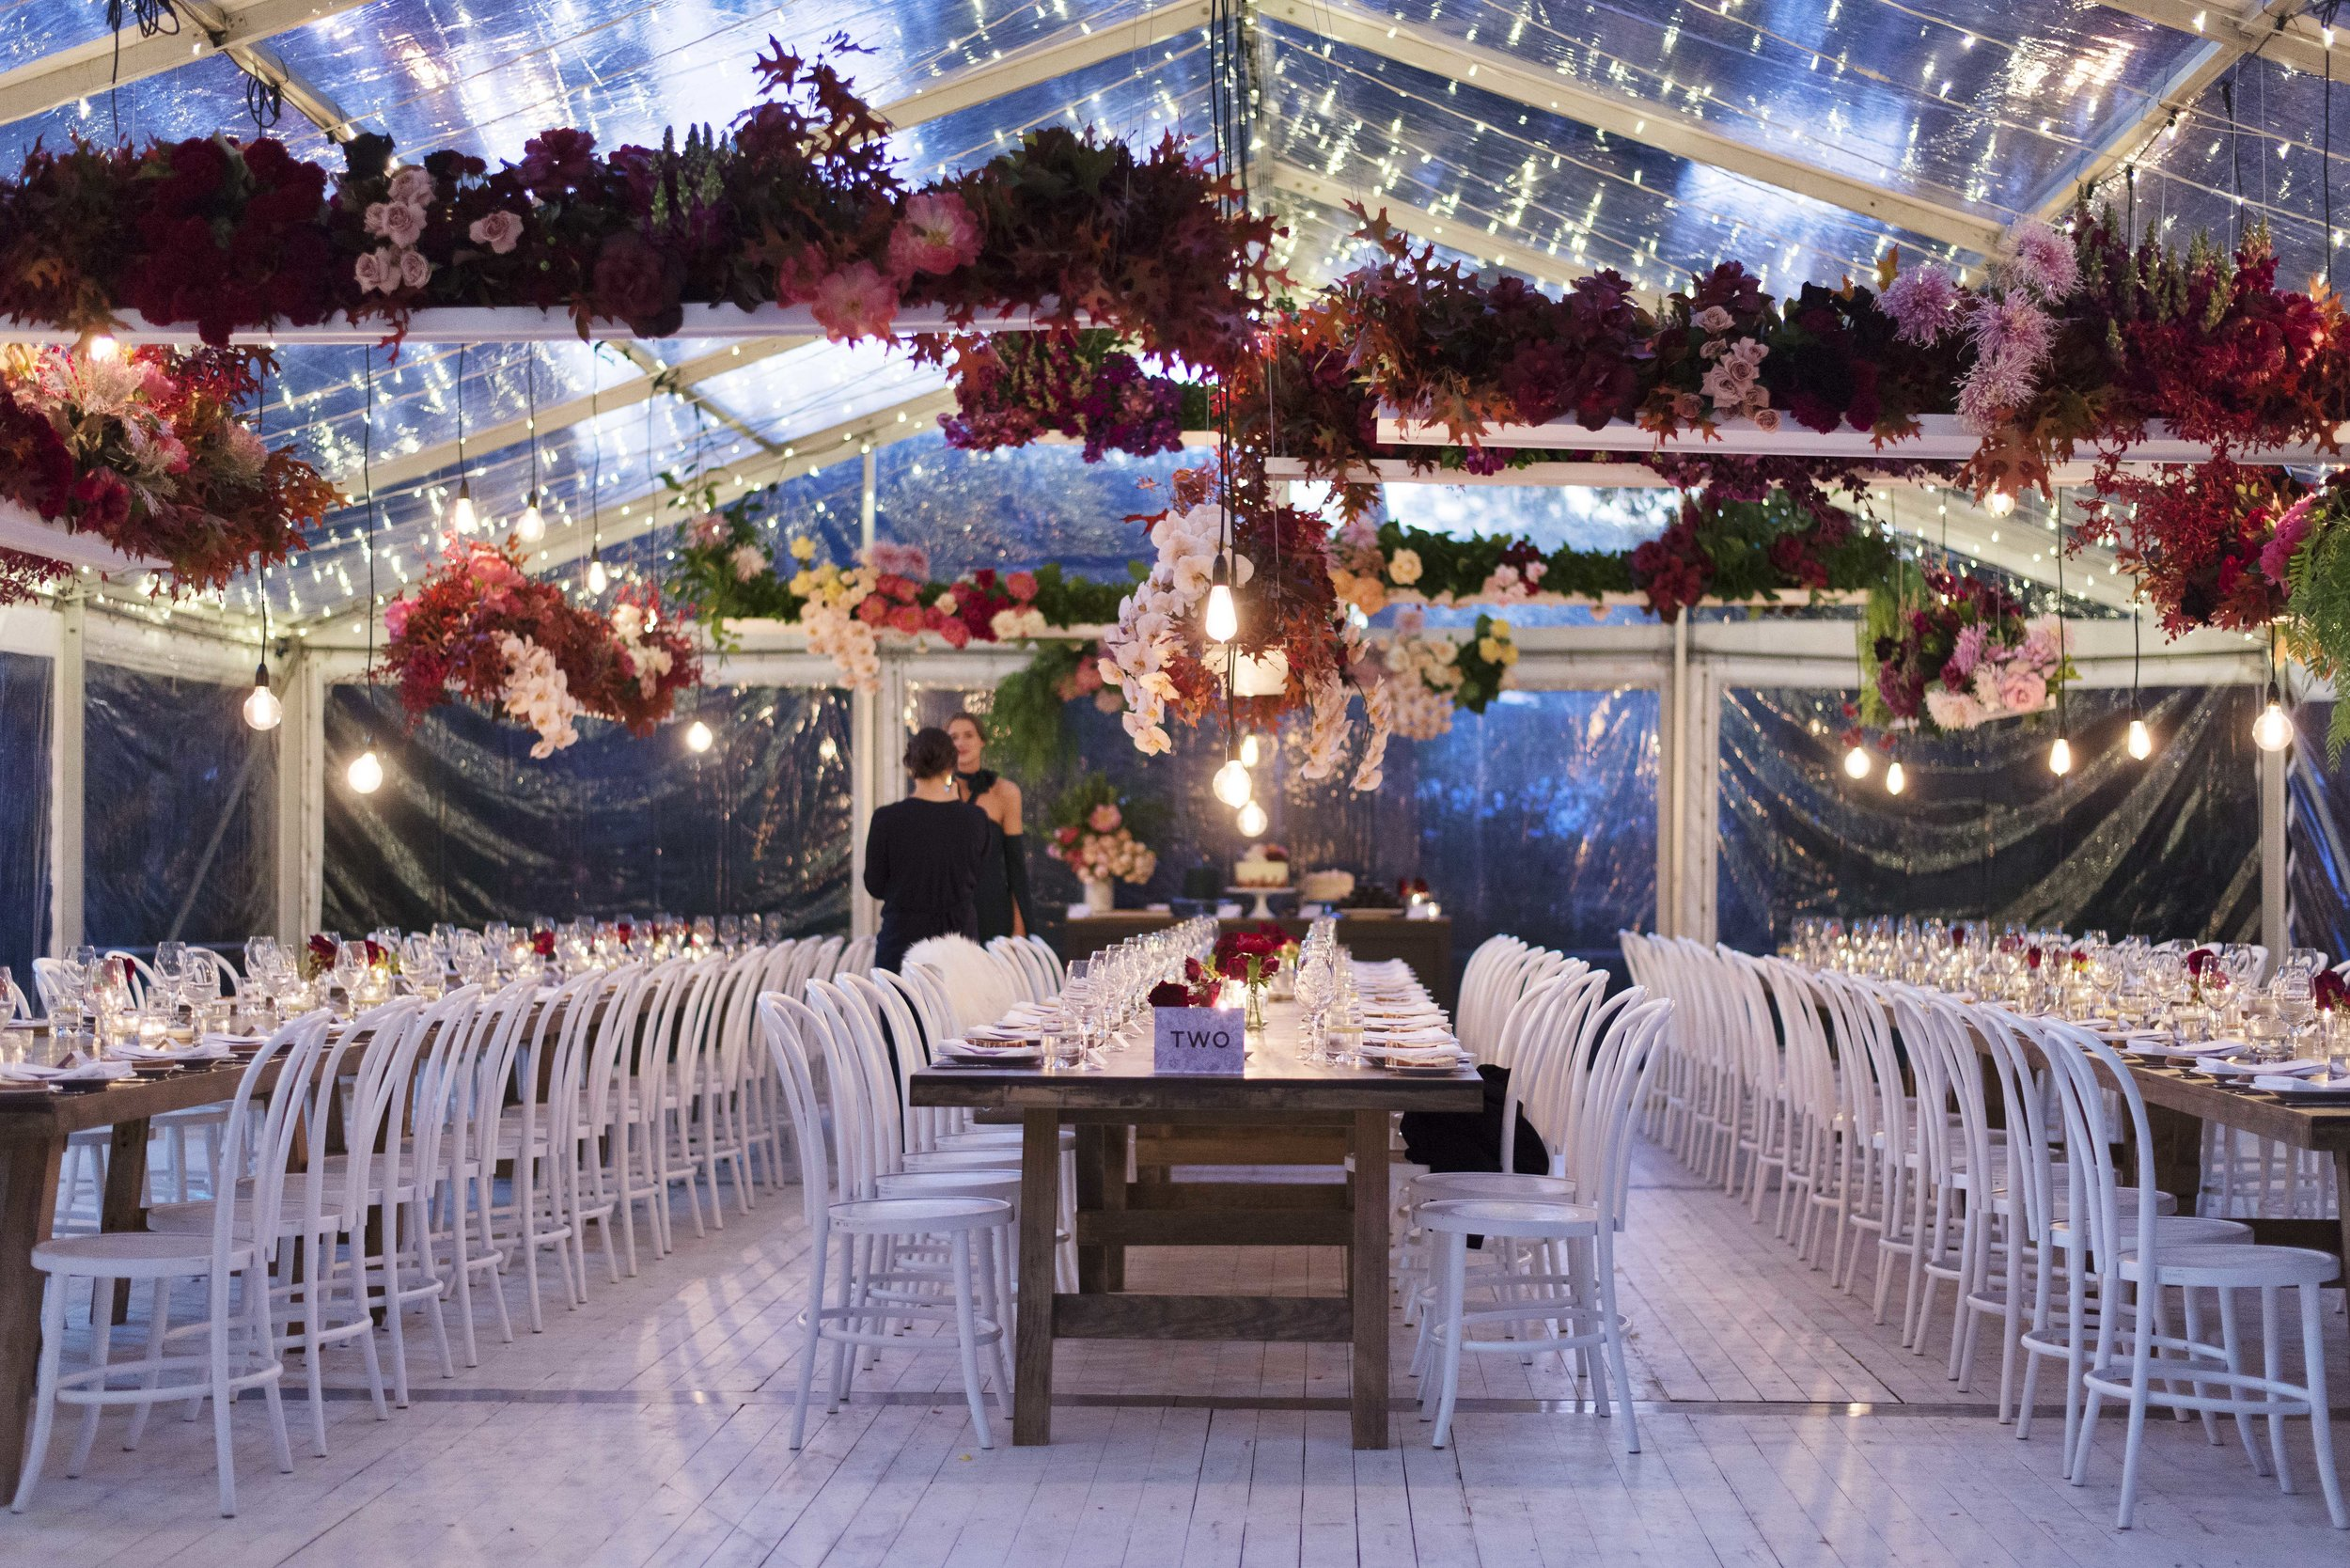 Marquee Wedding Styling Ideas Bold Colourful Tropical4.jpeg